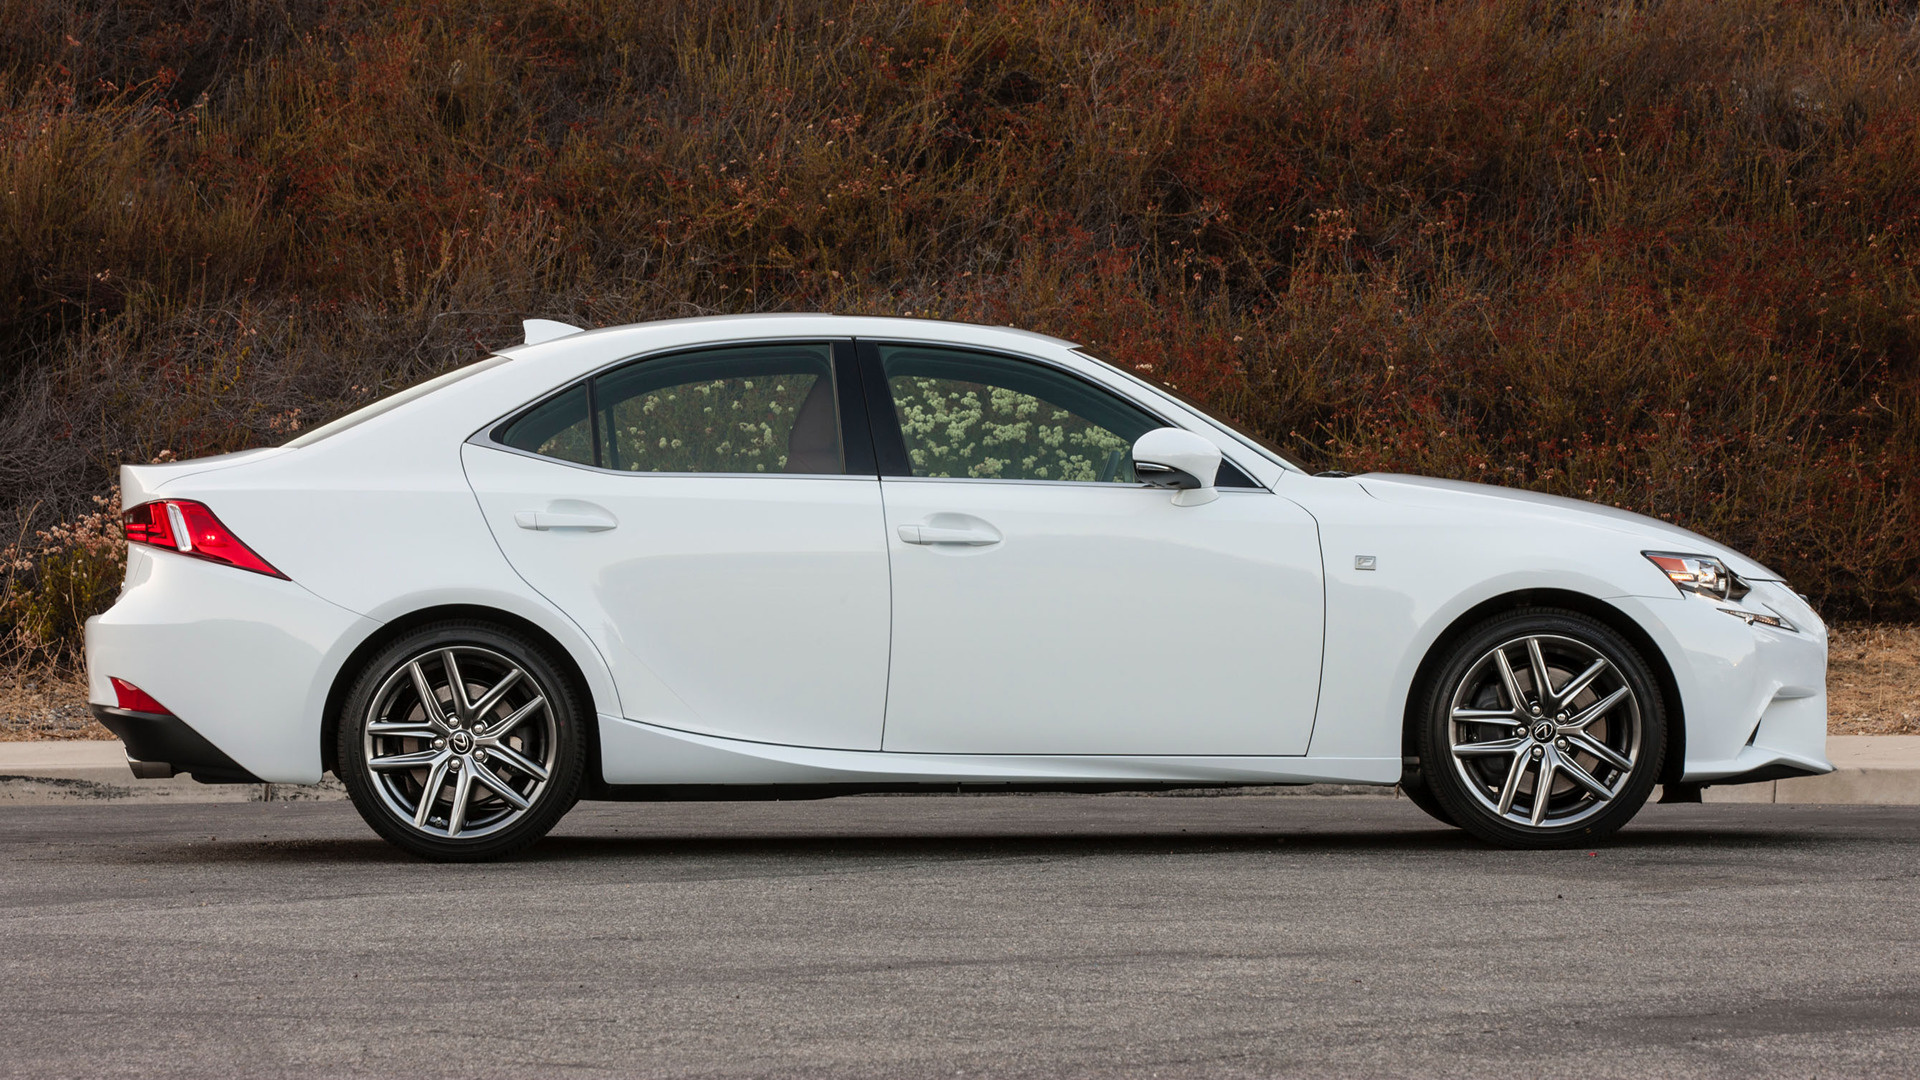 2014 lexus is f sport us wallpapers and hd images car pixel. Black Bedroom Furniture Sets. Home Design Ideas